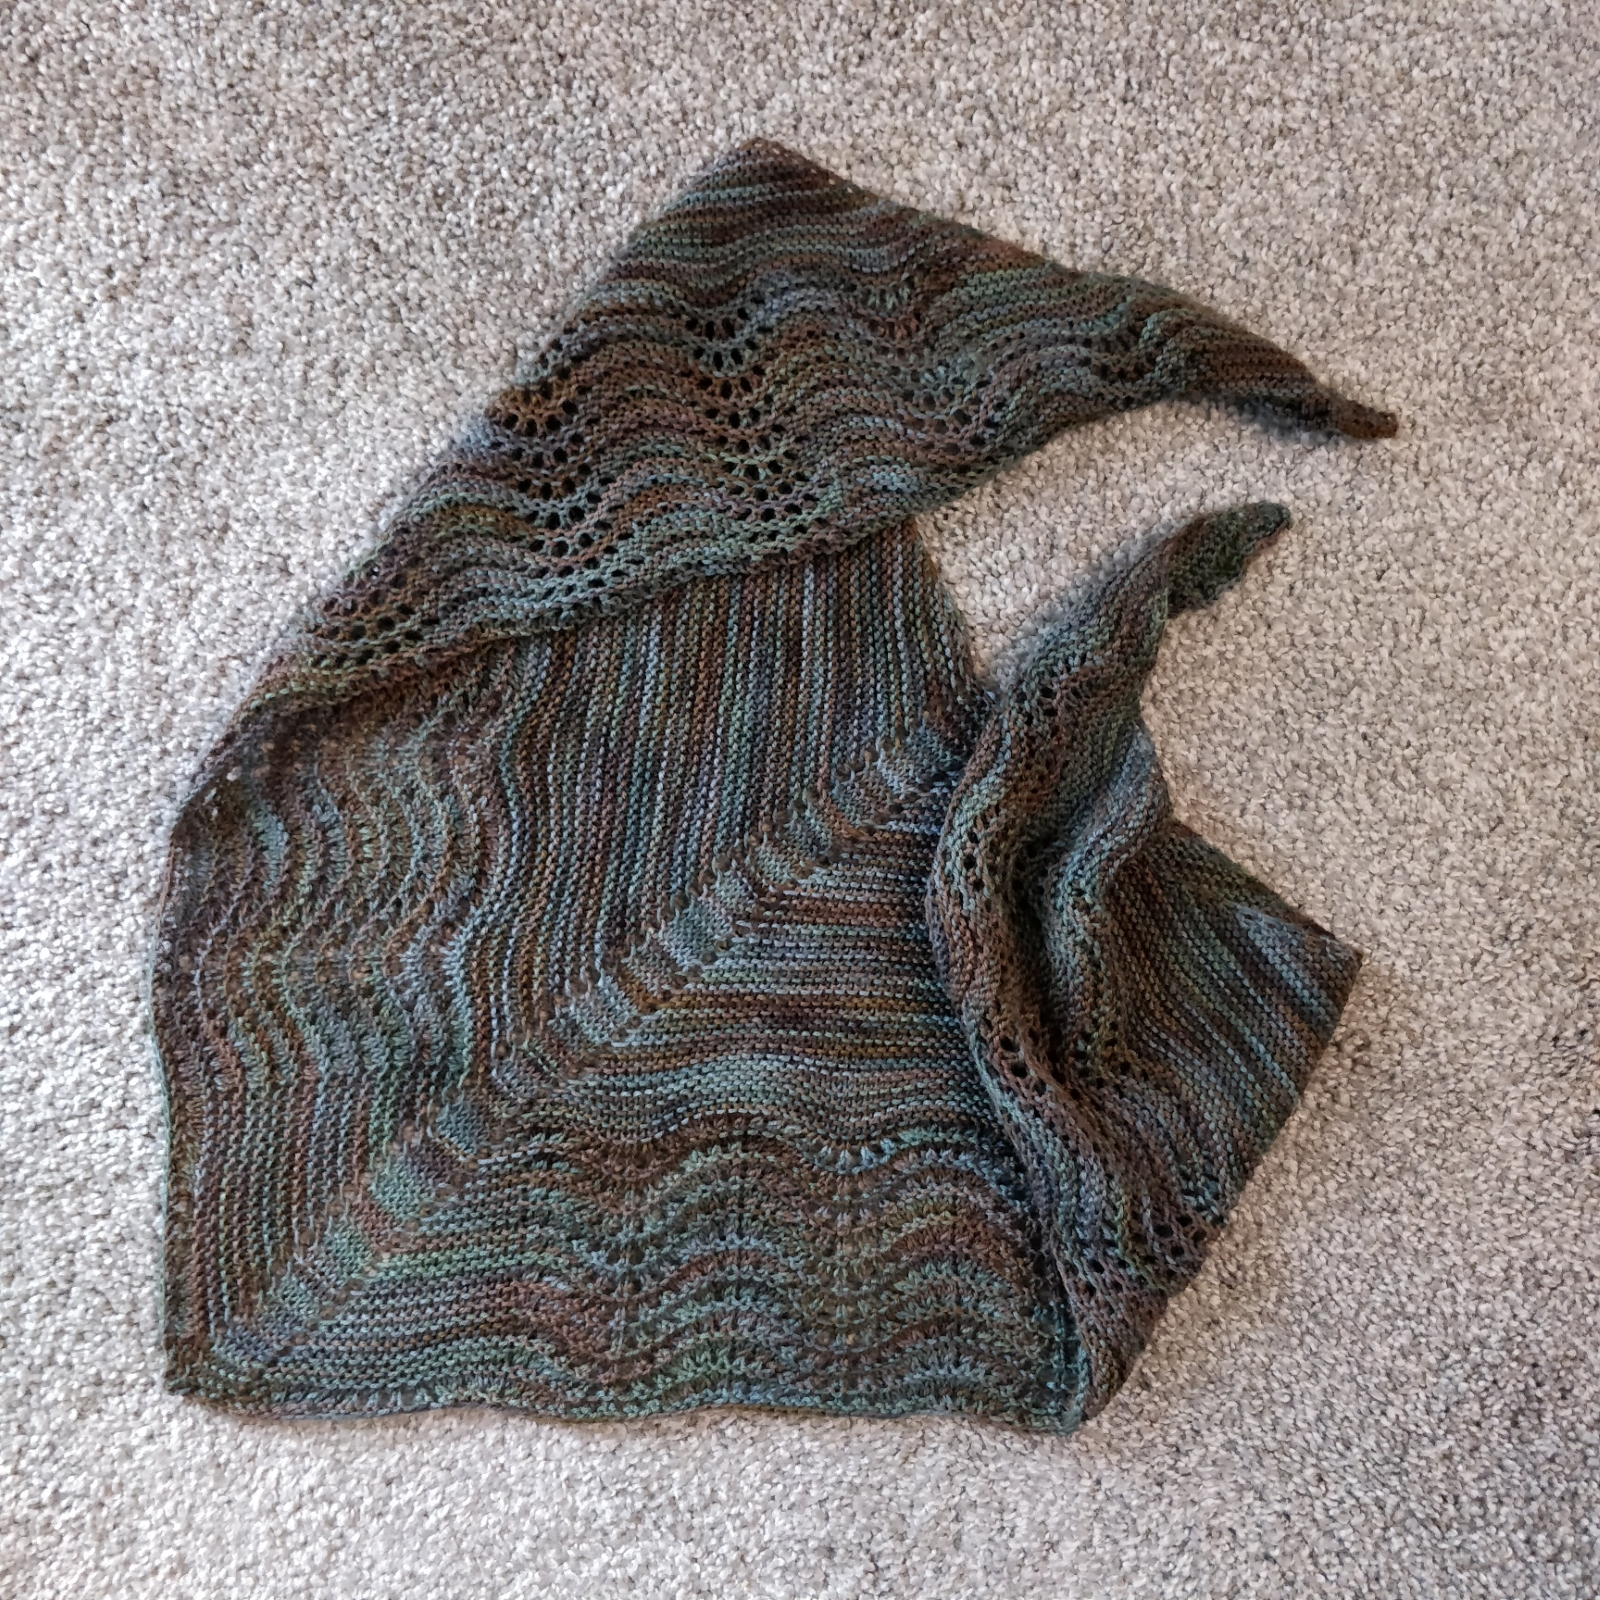 The shawl displayed on a gray carpet.